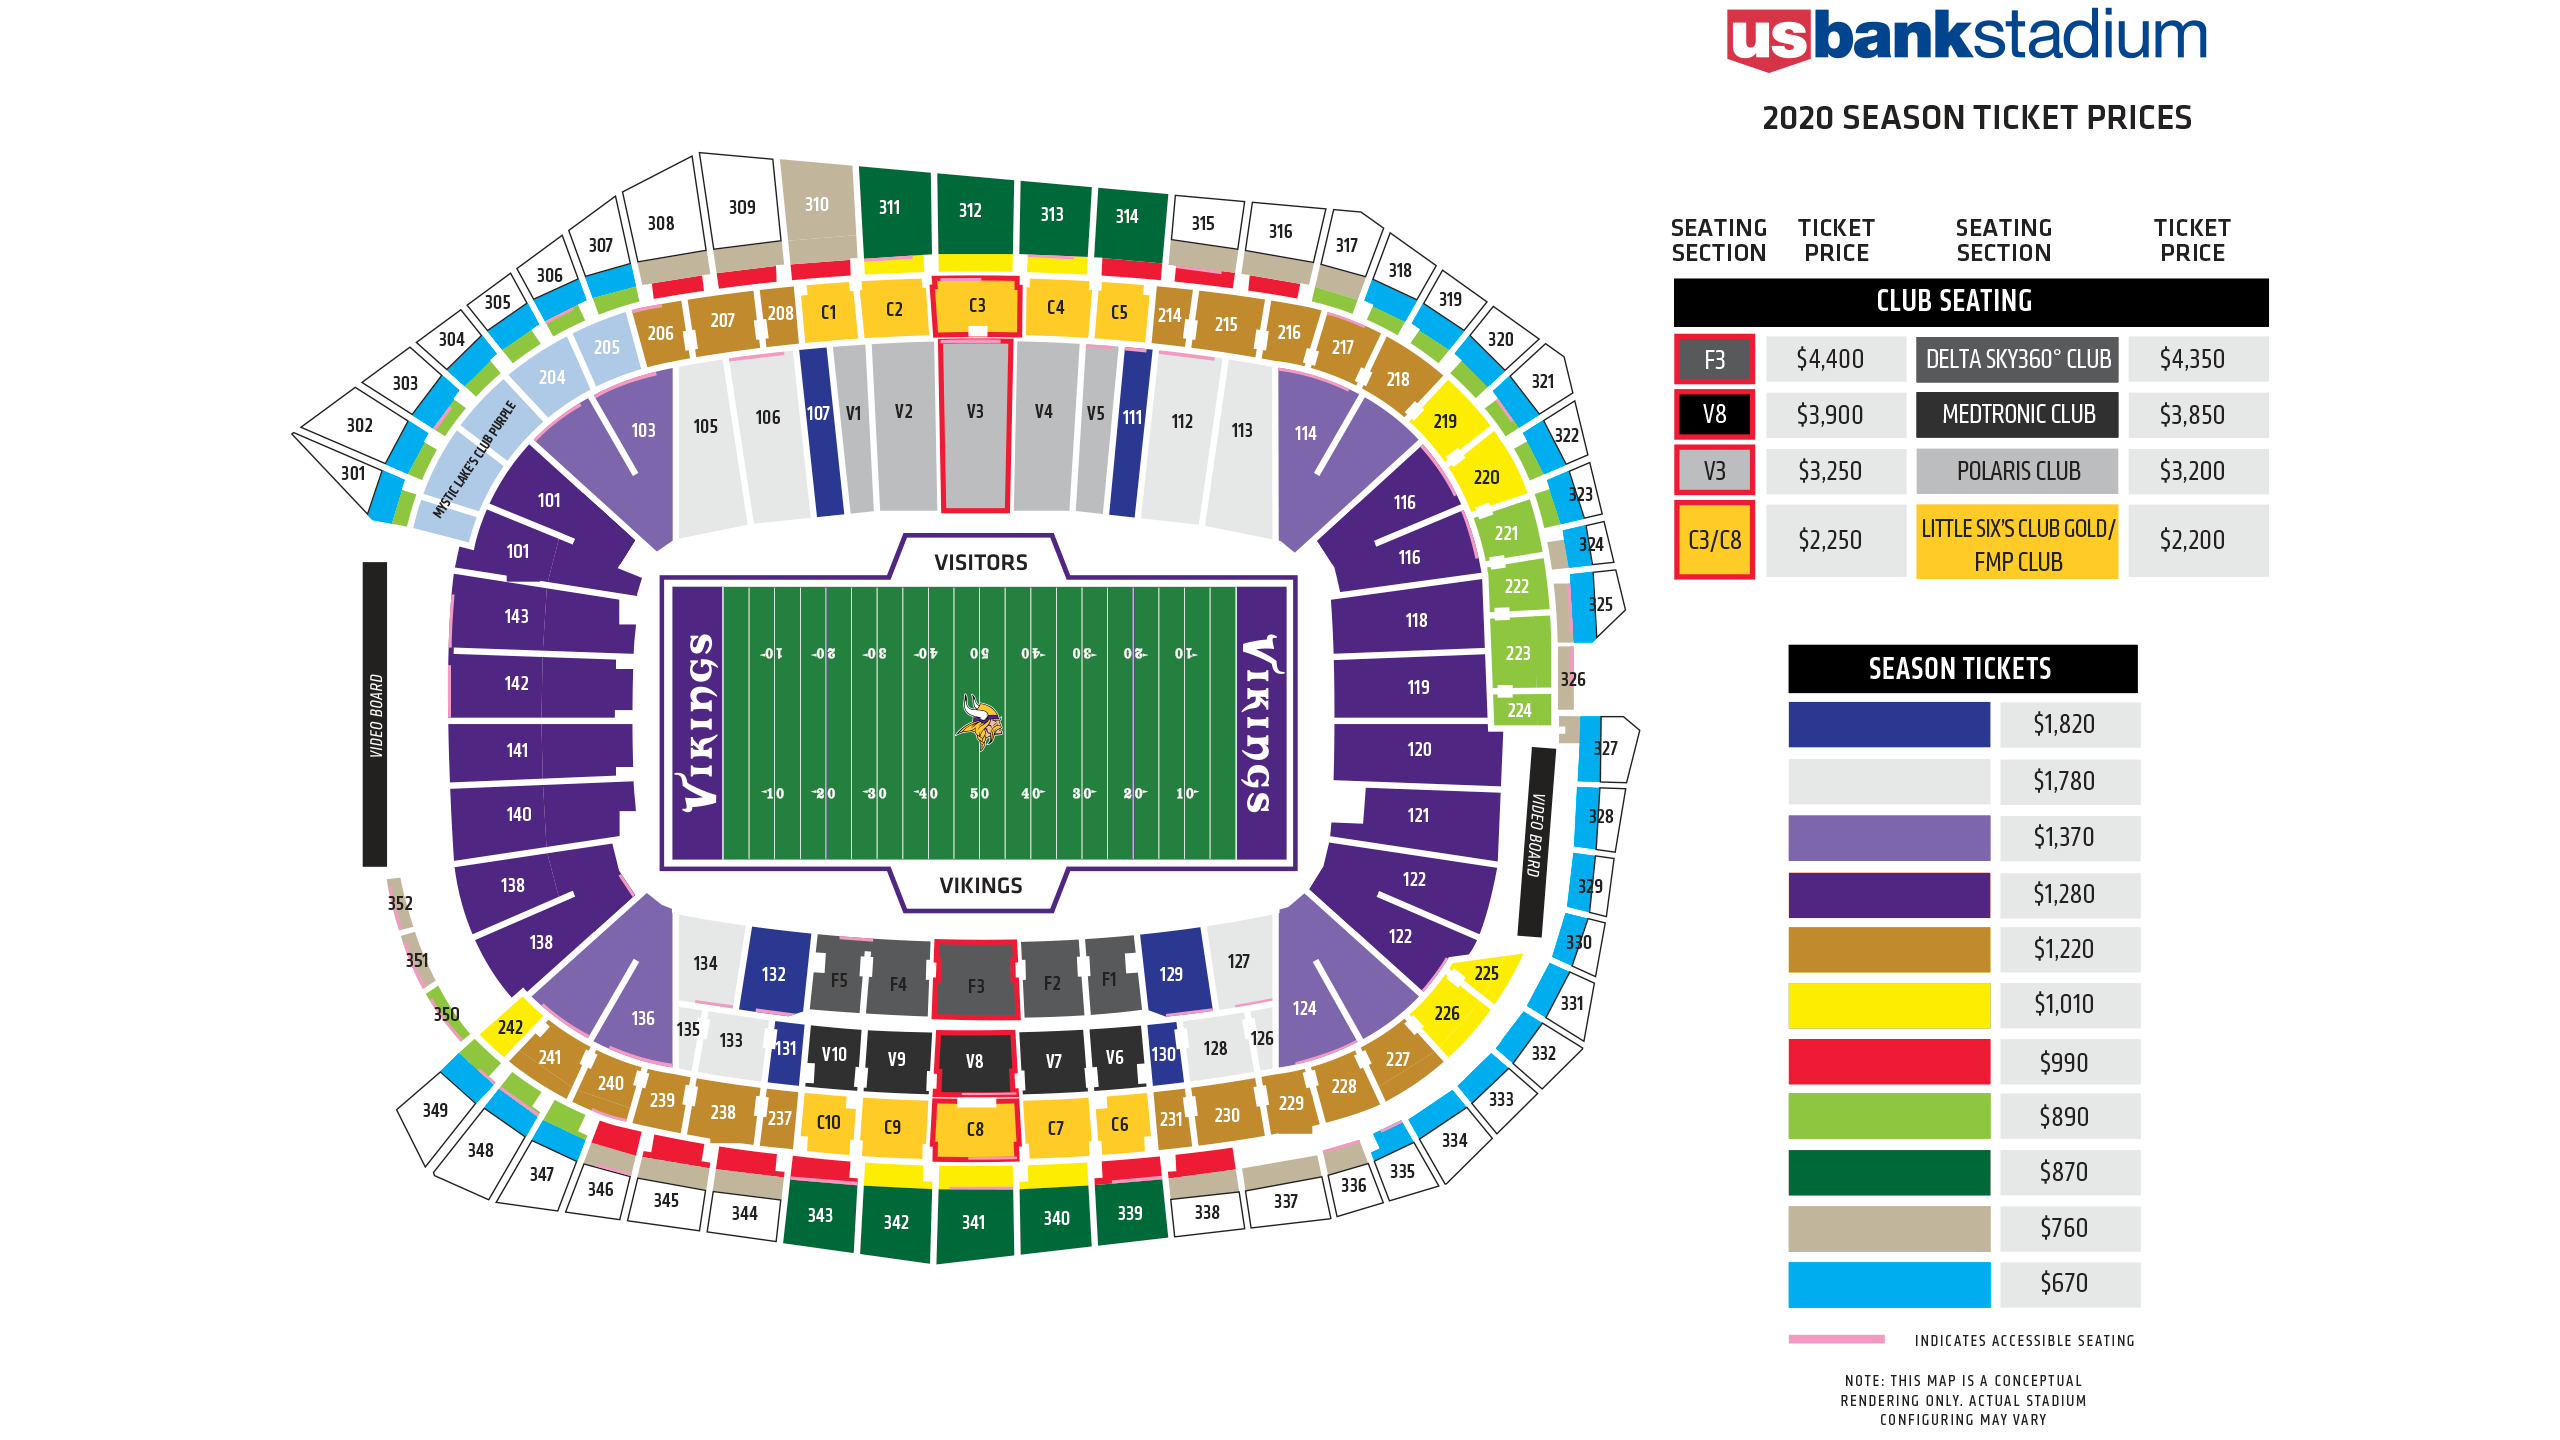 Us Bank Stadium Seating Map U.S. Bank Stadium Seating Chart and Map | Minnesota Vikings